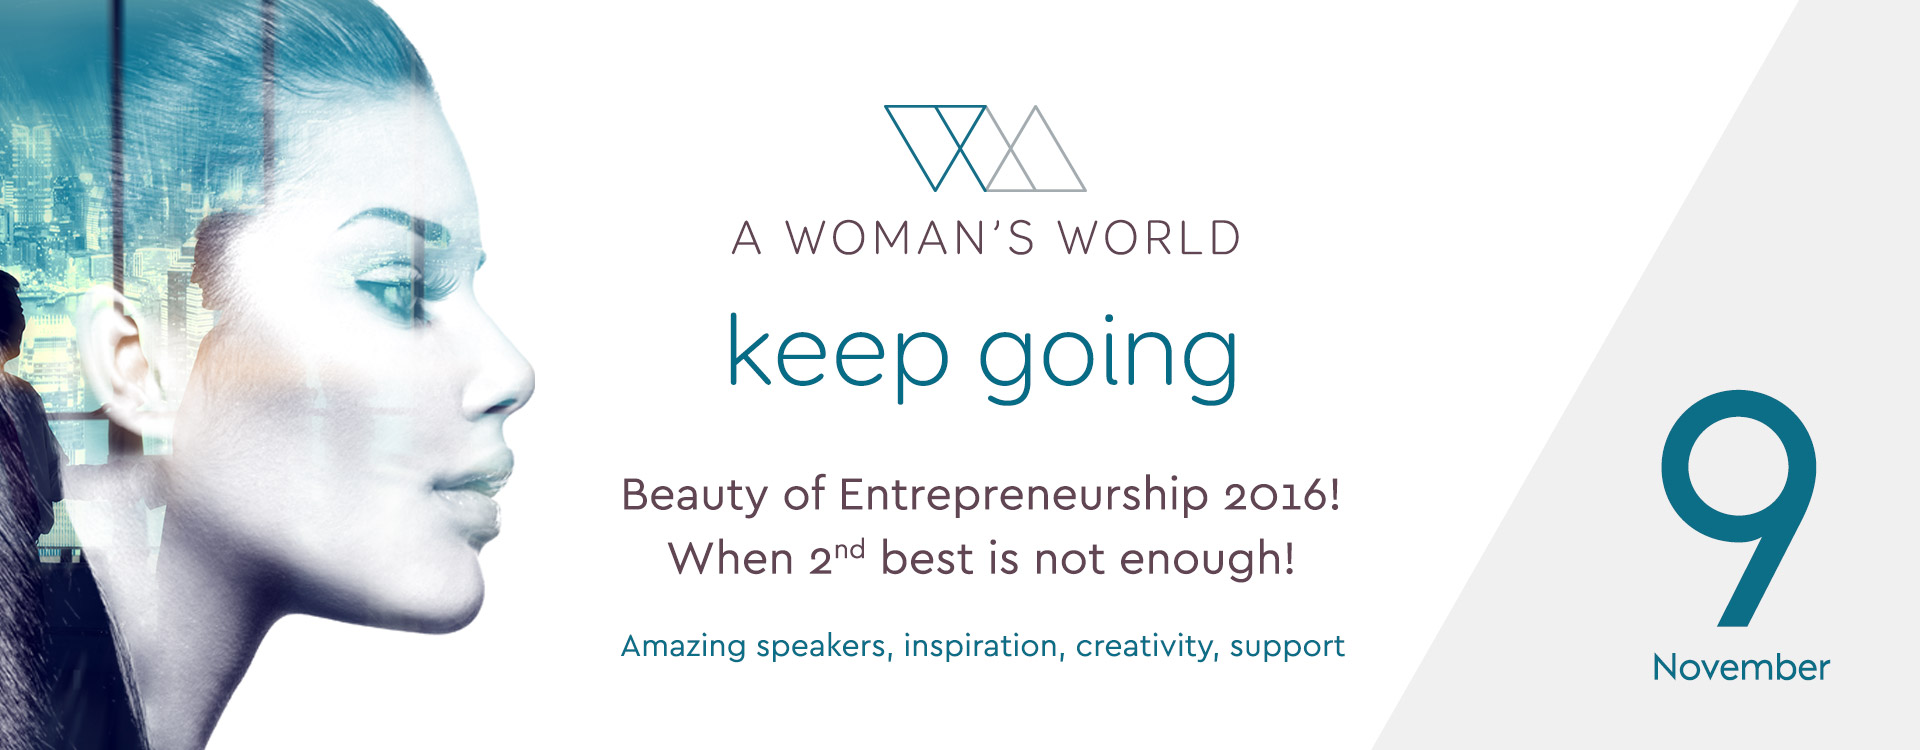 Beauty of Entrepreneurship 2016